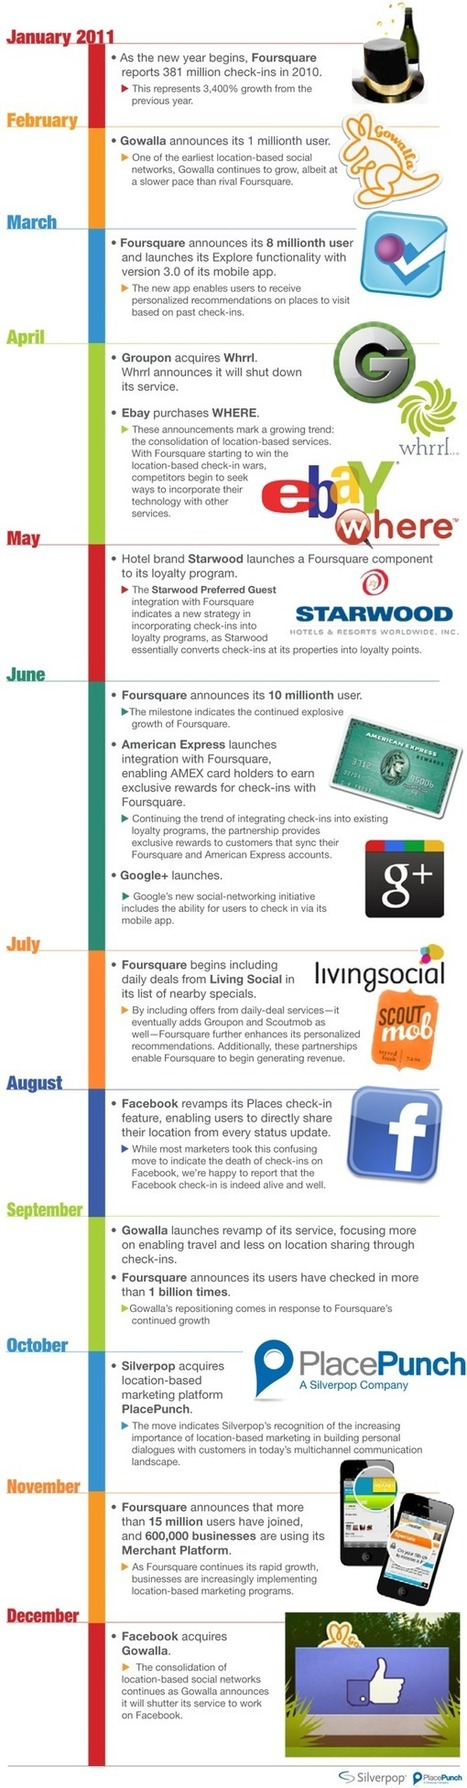 Location-Based Marketing in 2011: The Year in Review | SM | Scoop.it